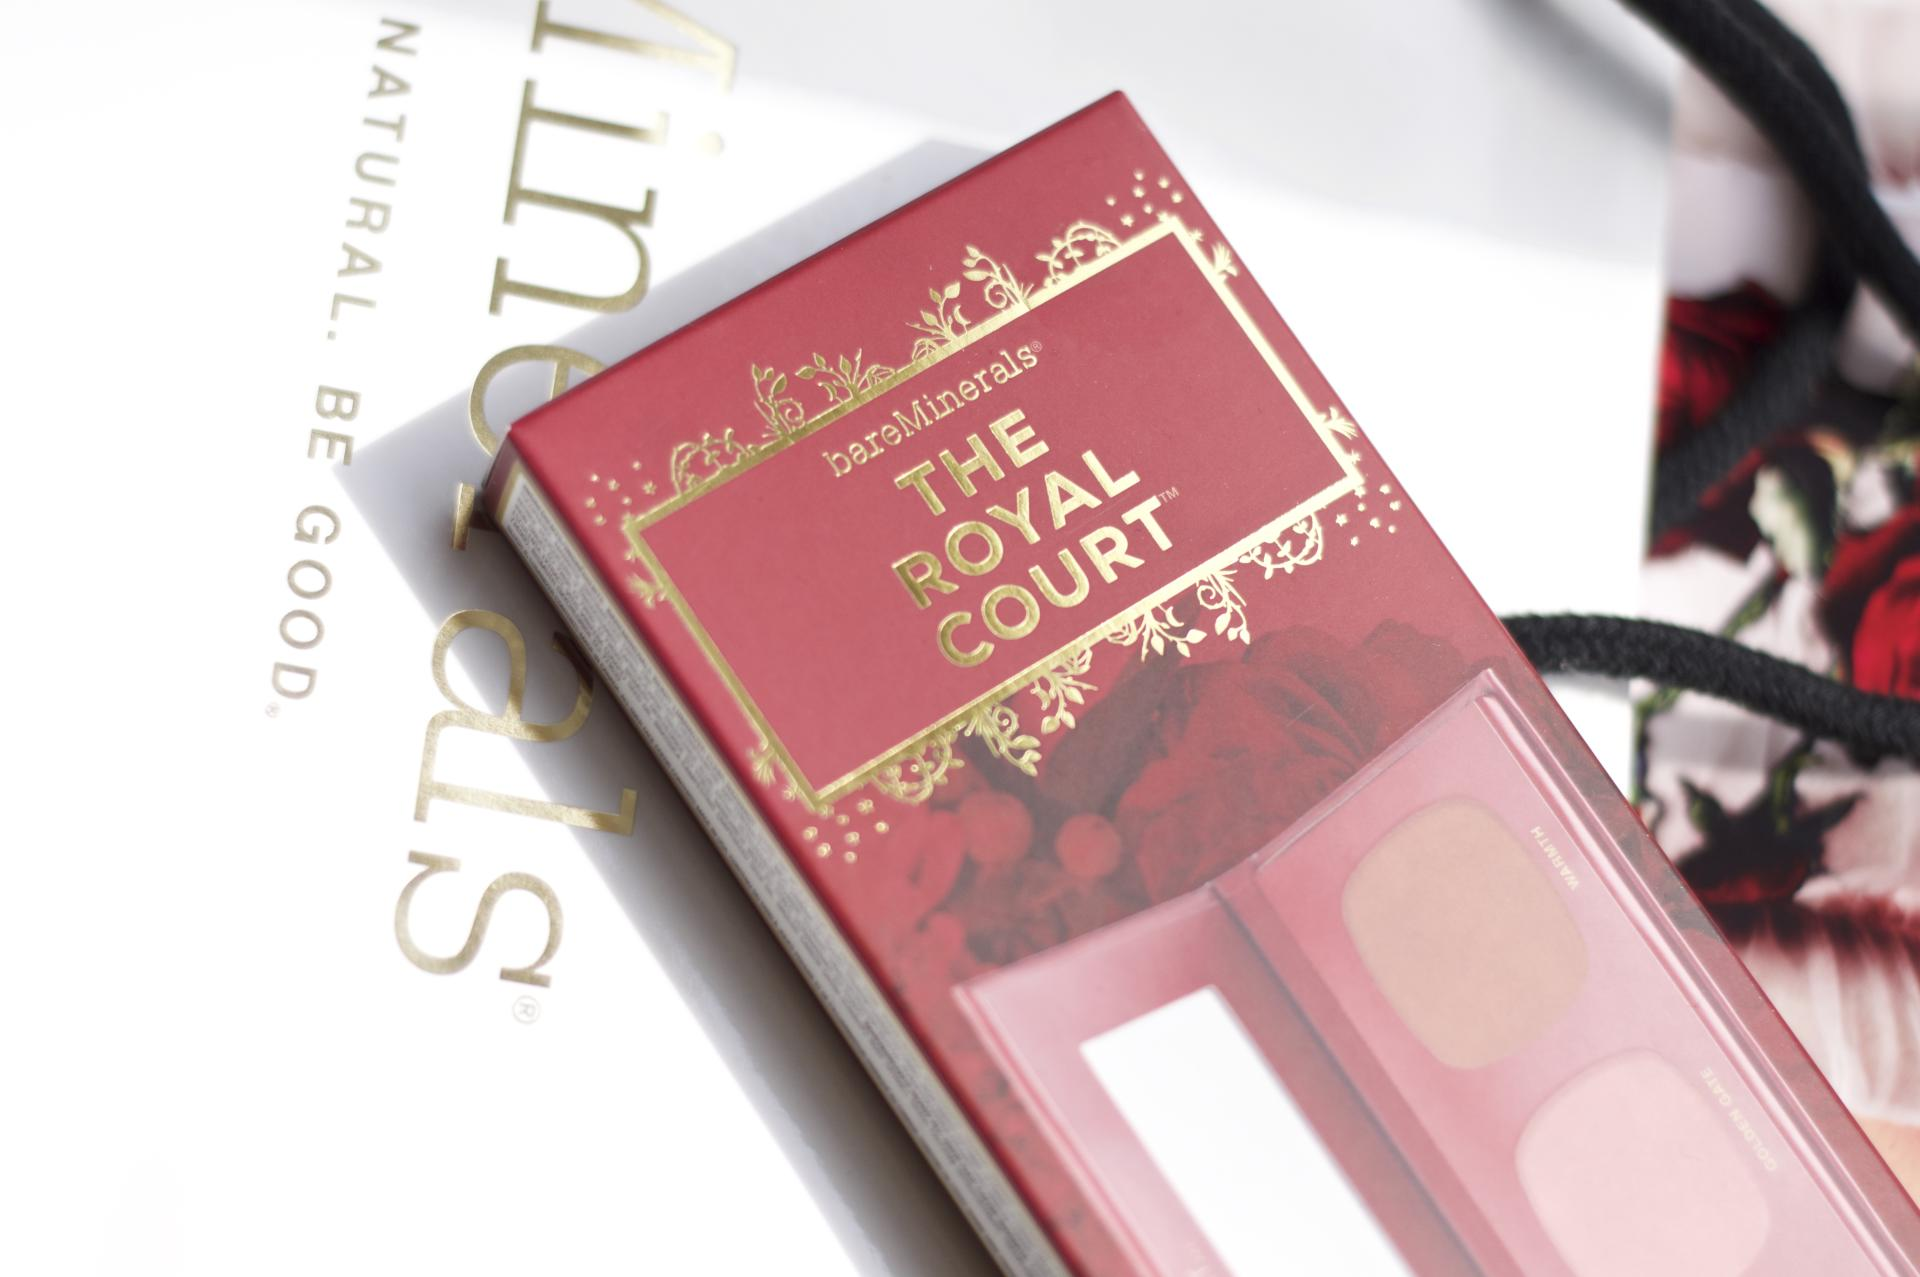 Made From Beauty bareMinerals The Royal Court